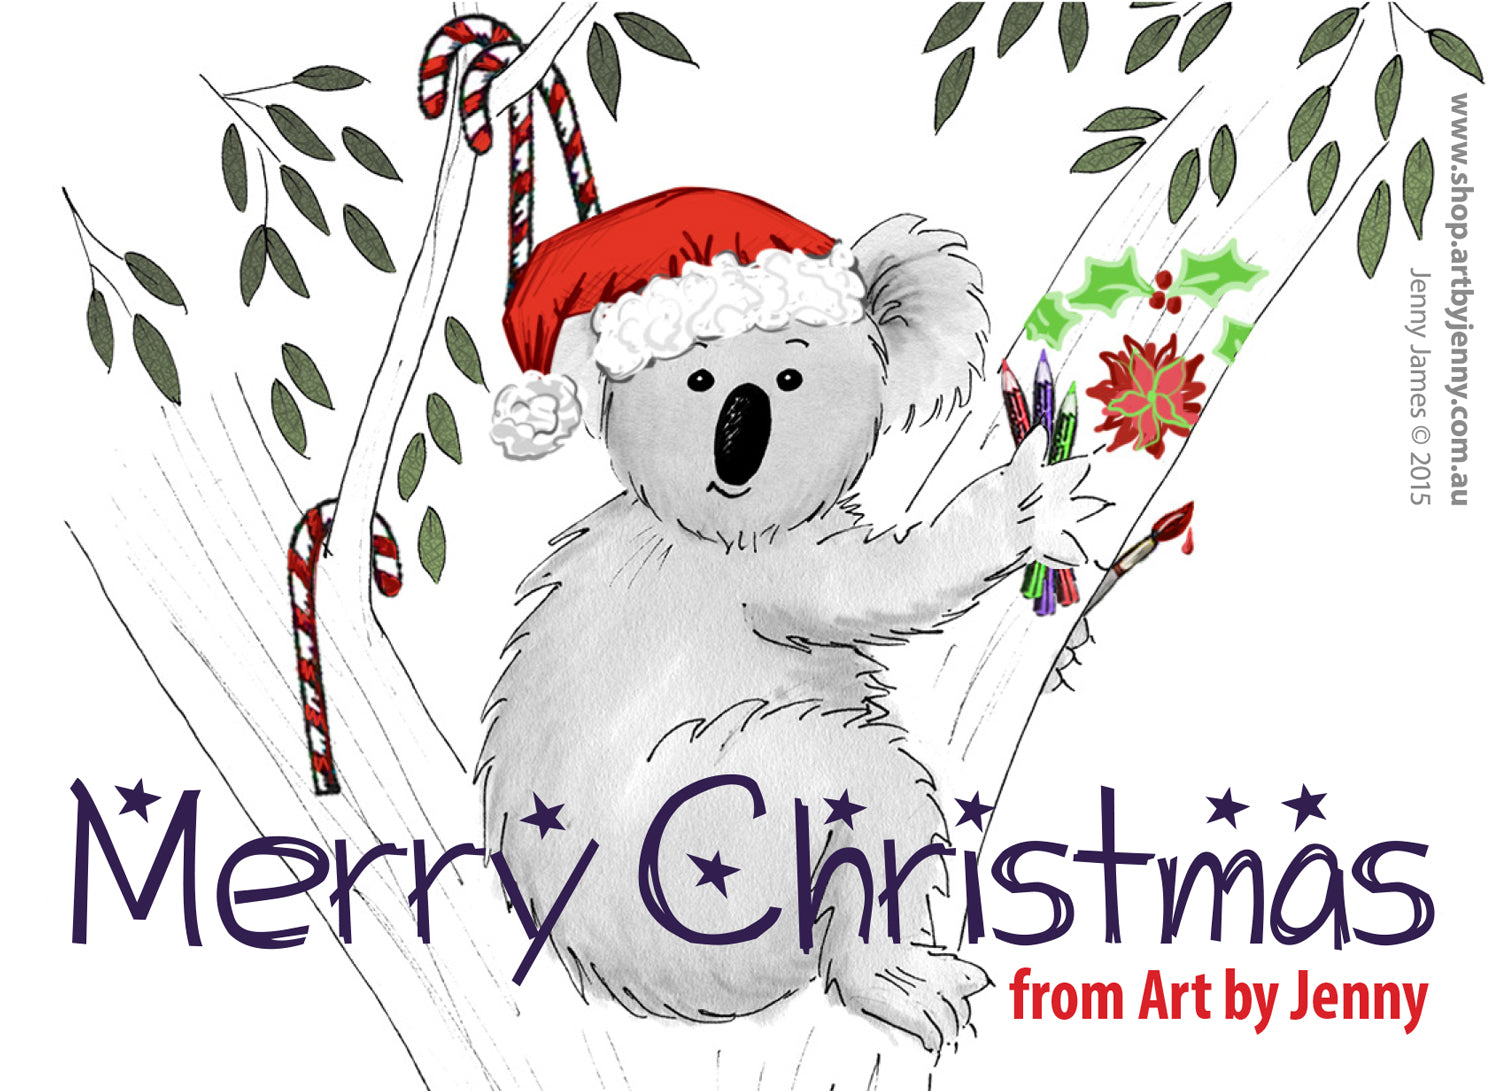 Merry Christmas and a Happy Creative New Year from all of us at Art by Jenny